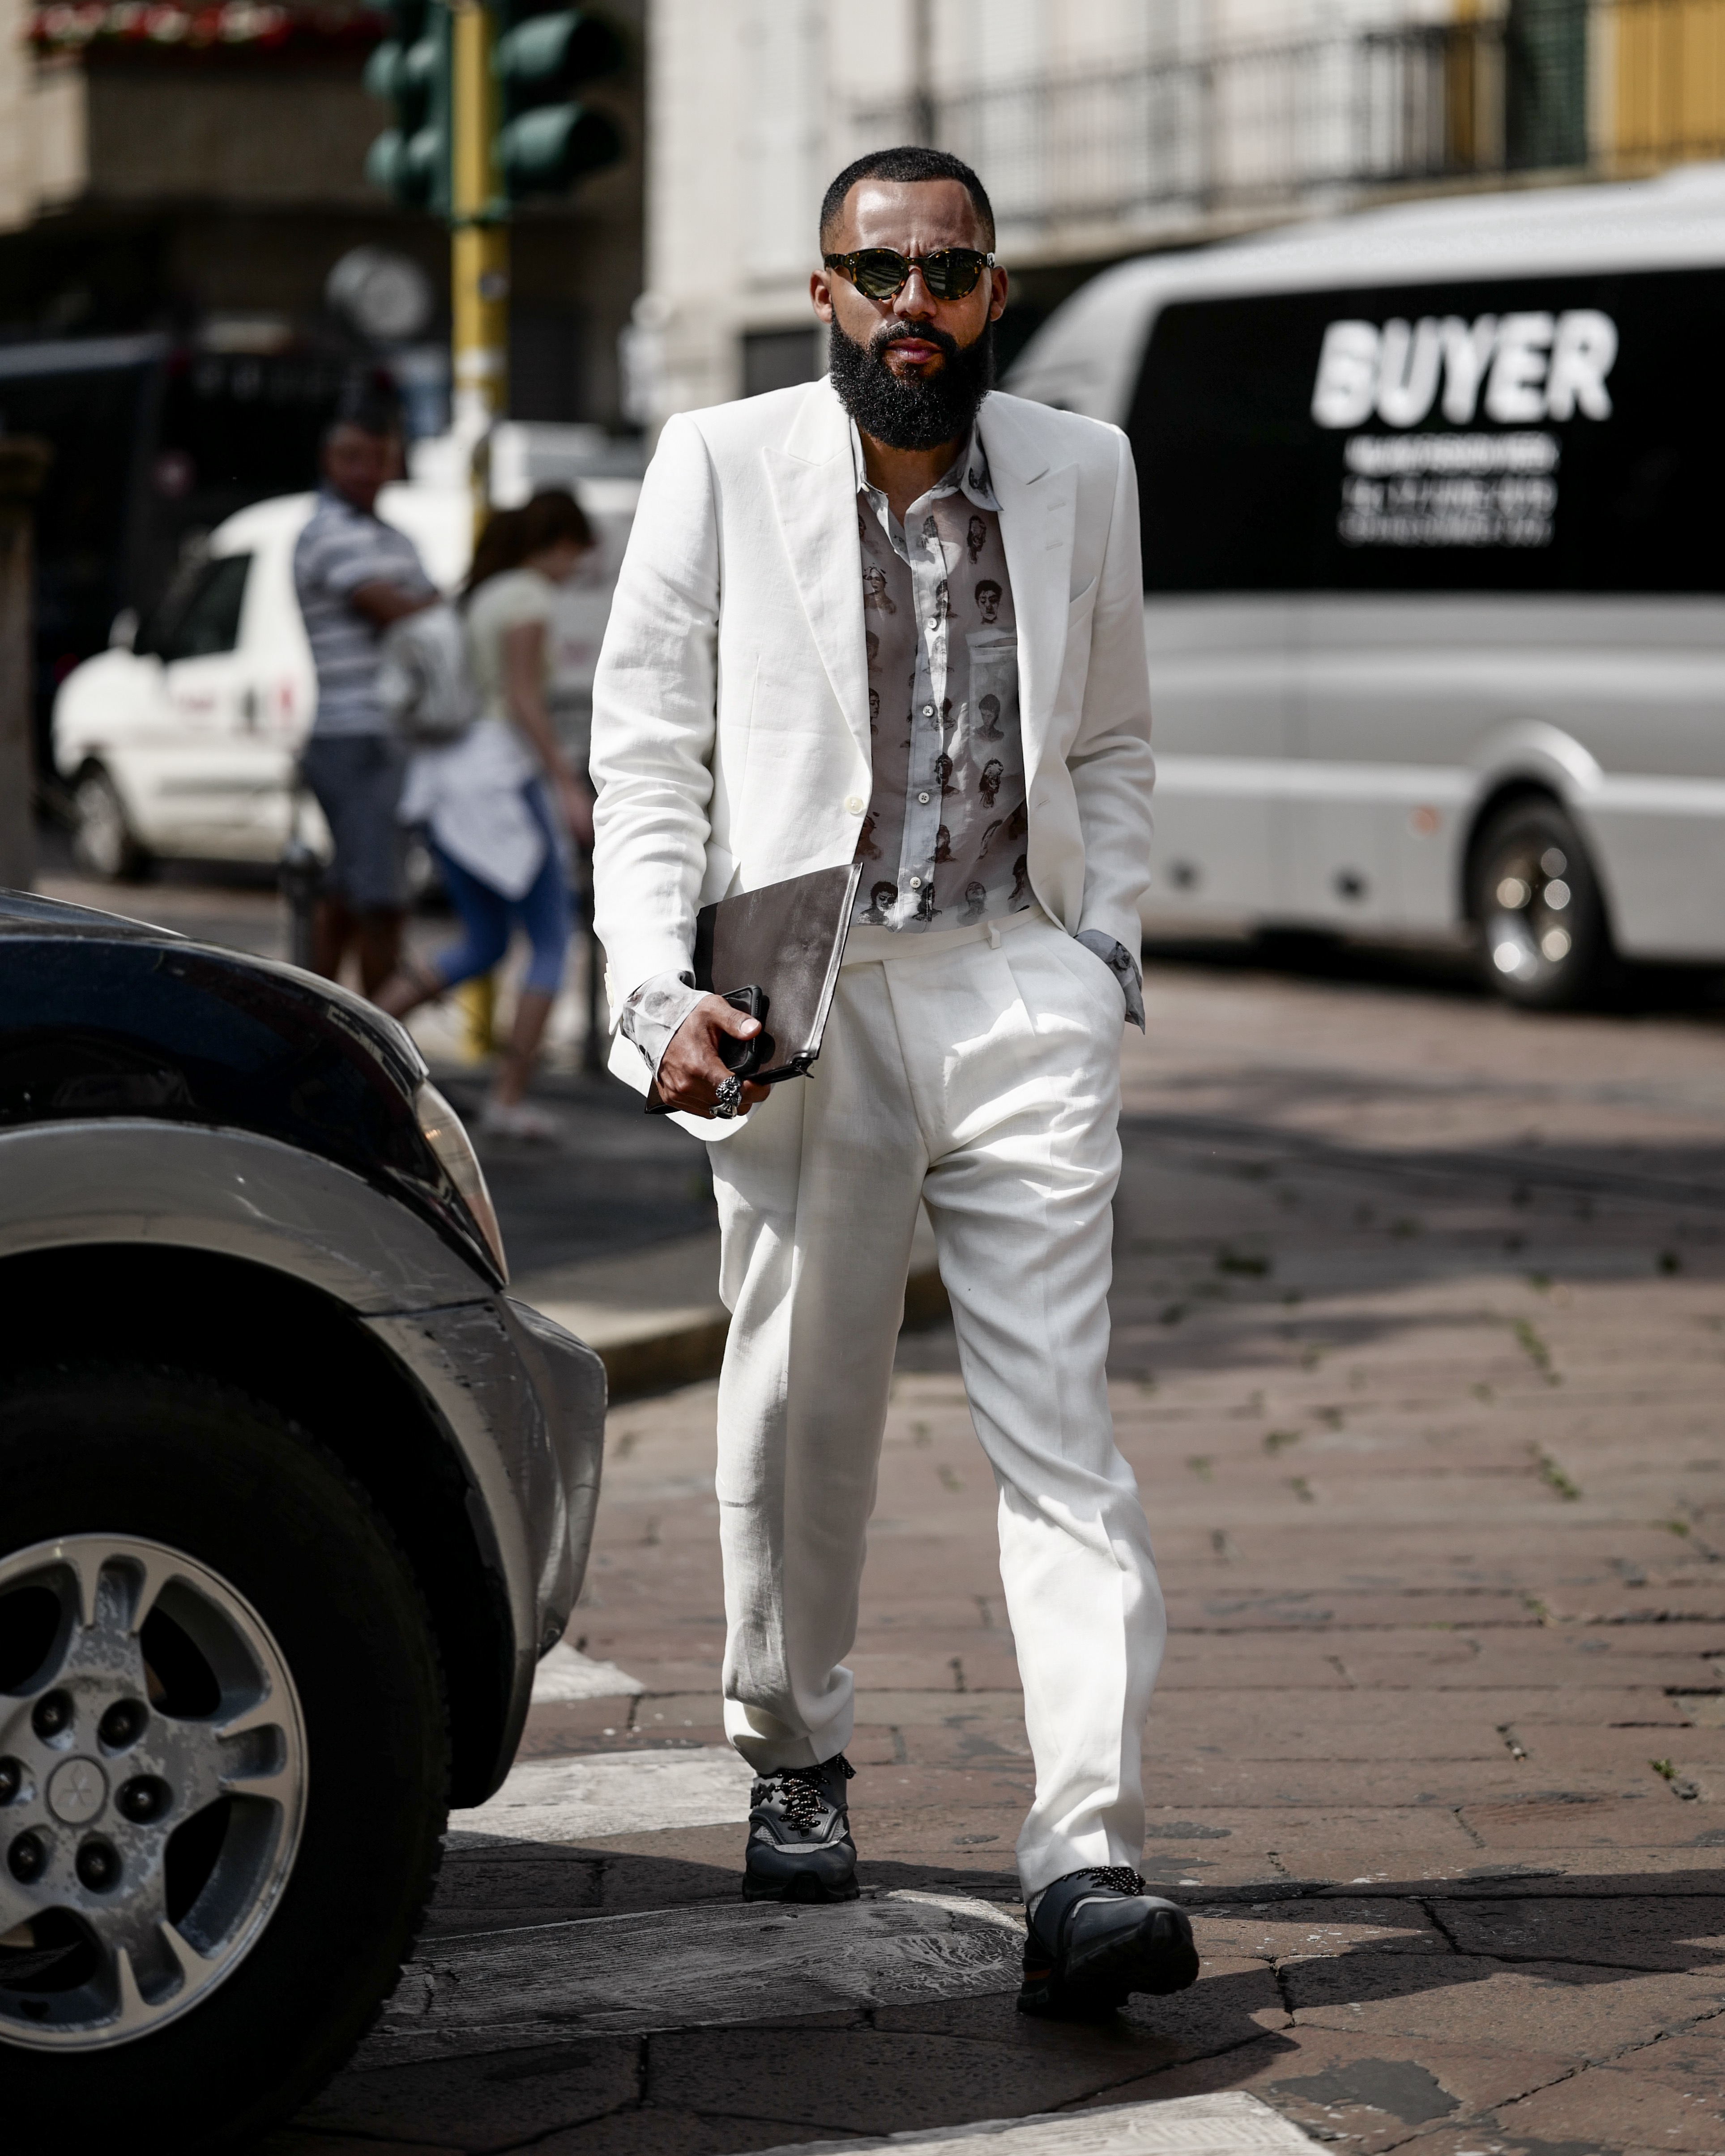 Street Style Shot of Jean-Claude Mpassy from New Kiss on the Blog during Milan Fashion Week. Wearing all-white Tiger of Sweden suit.